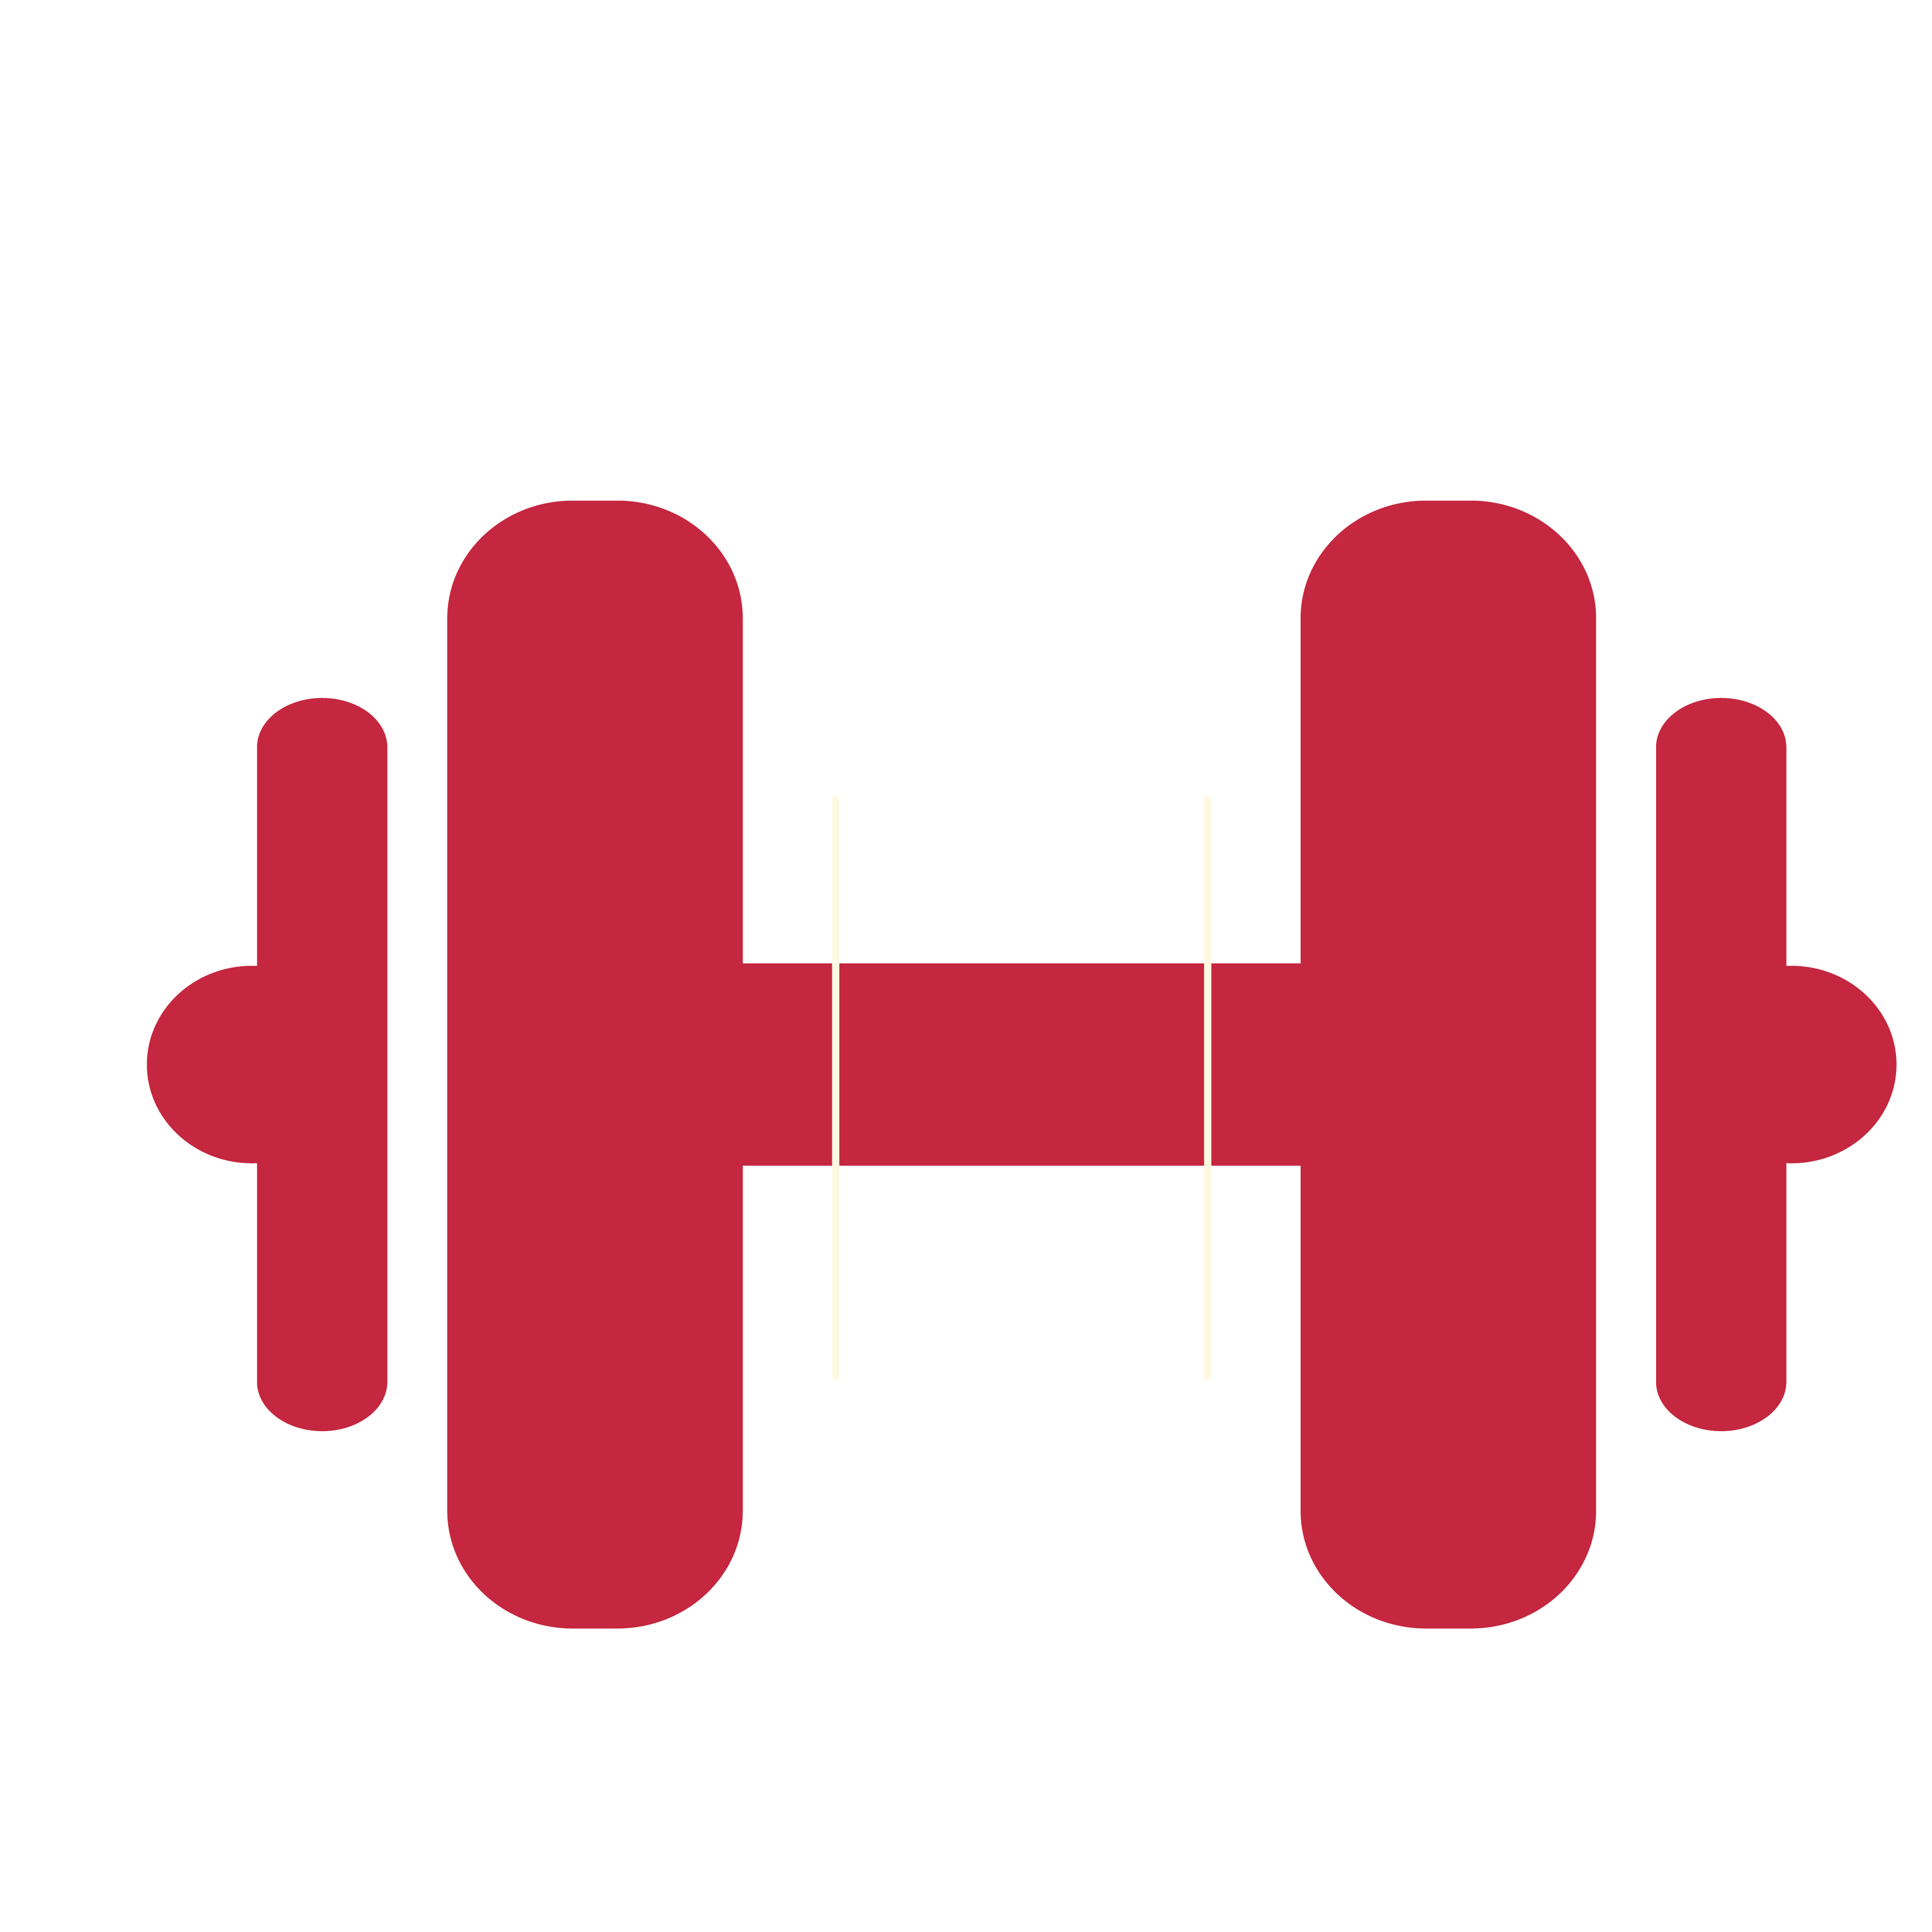 Weights svg curved barbell. Physical fitness weight loss